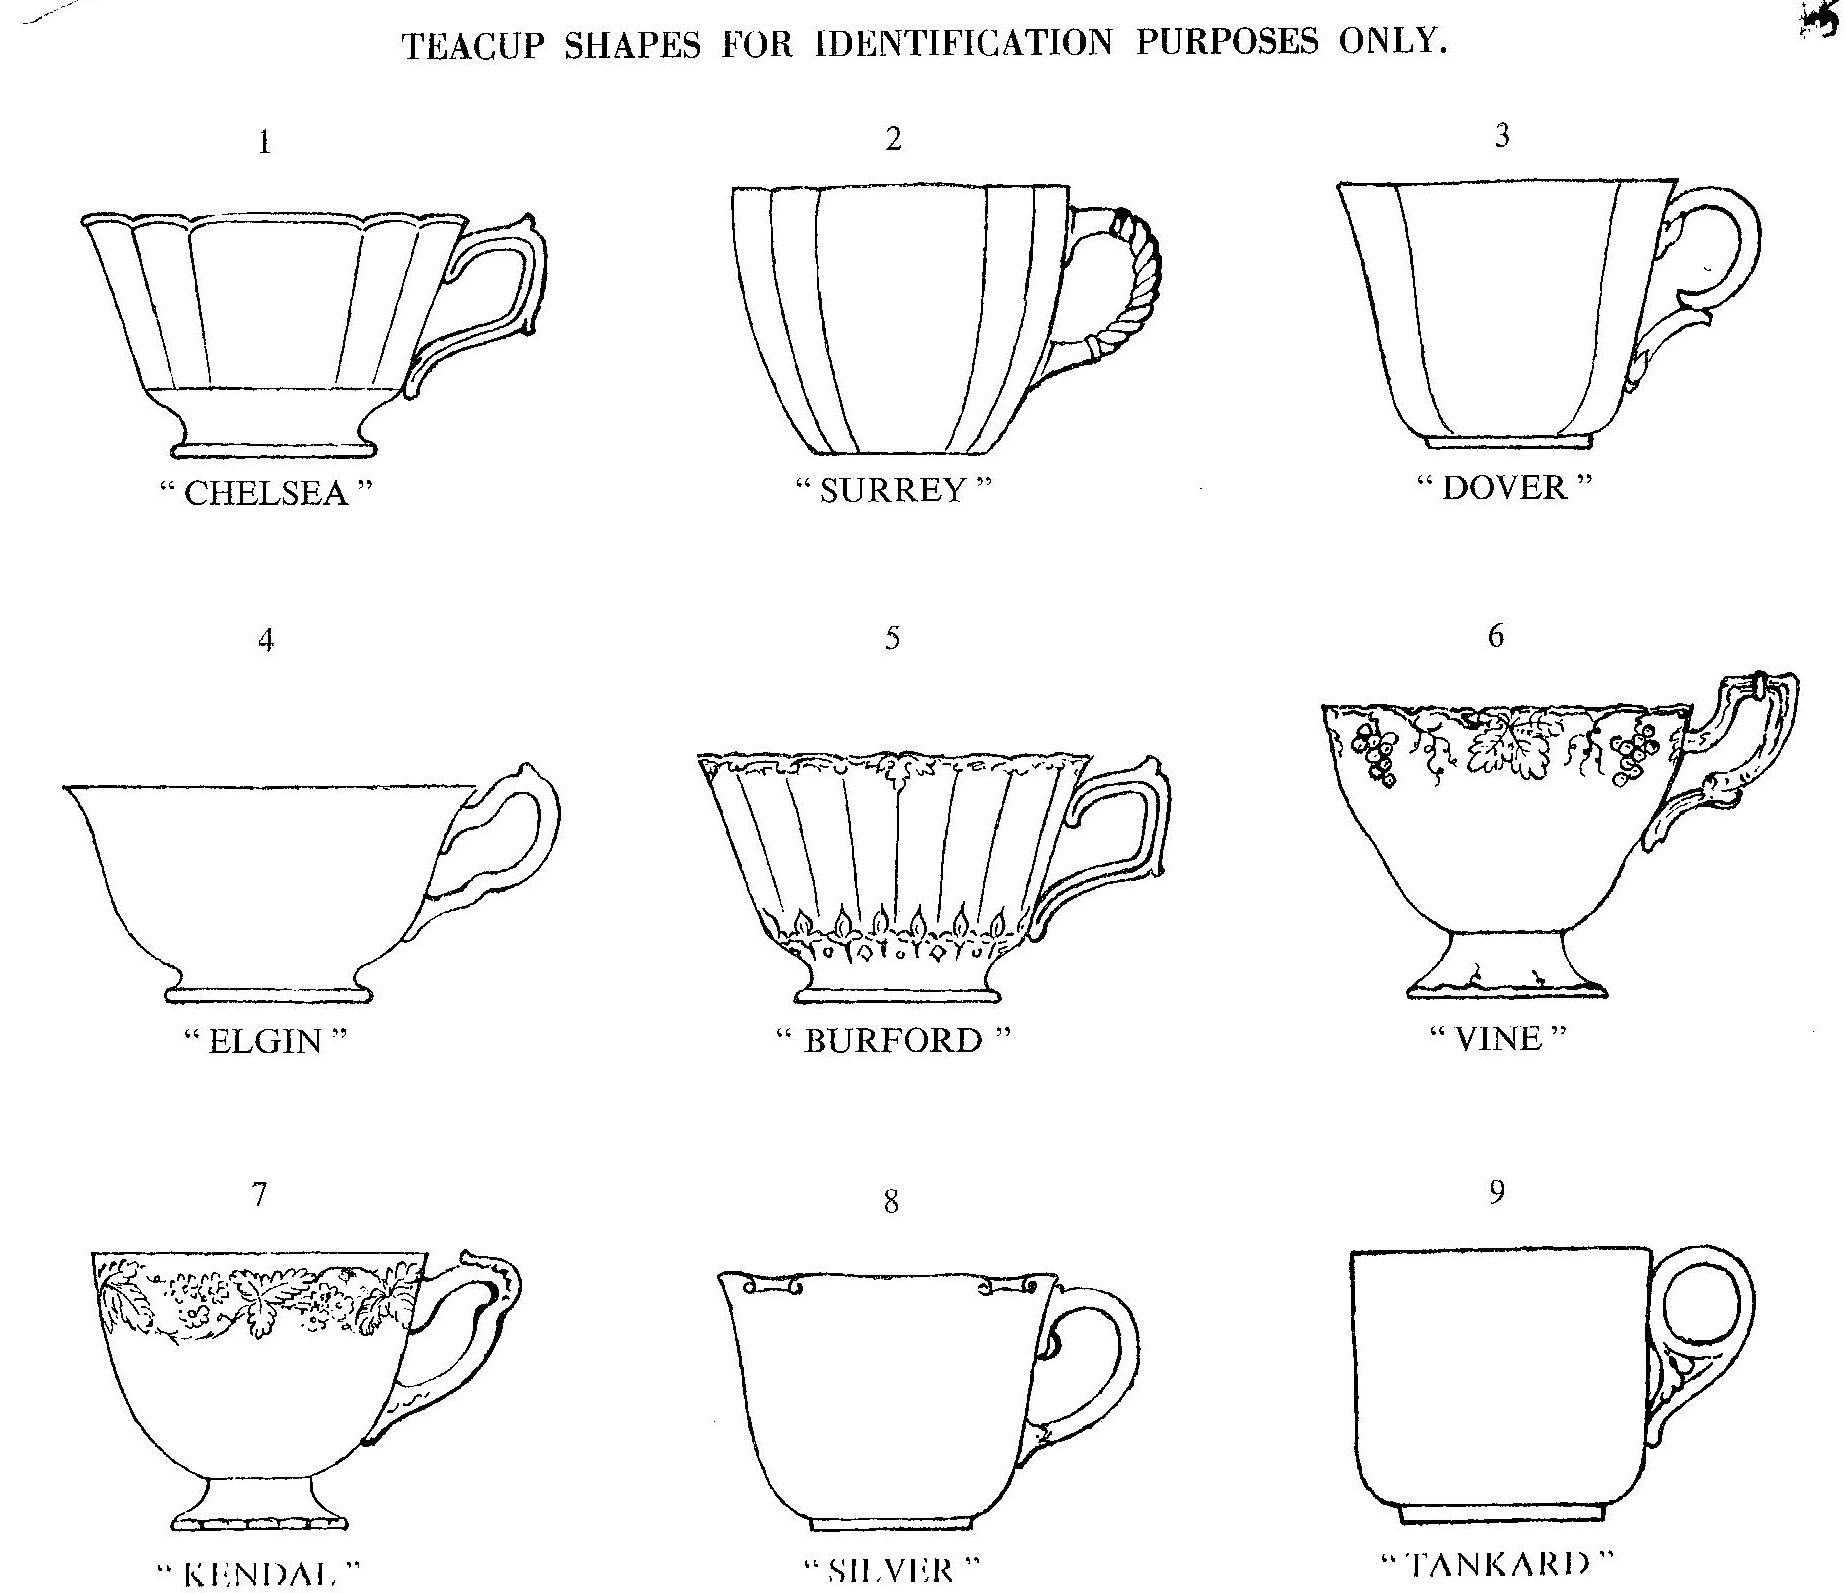 royal-crown-derby-shapes-1952-1-9